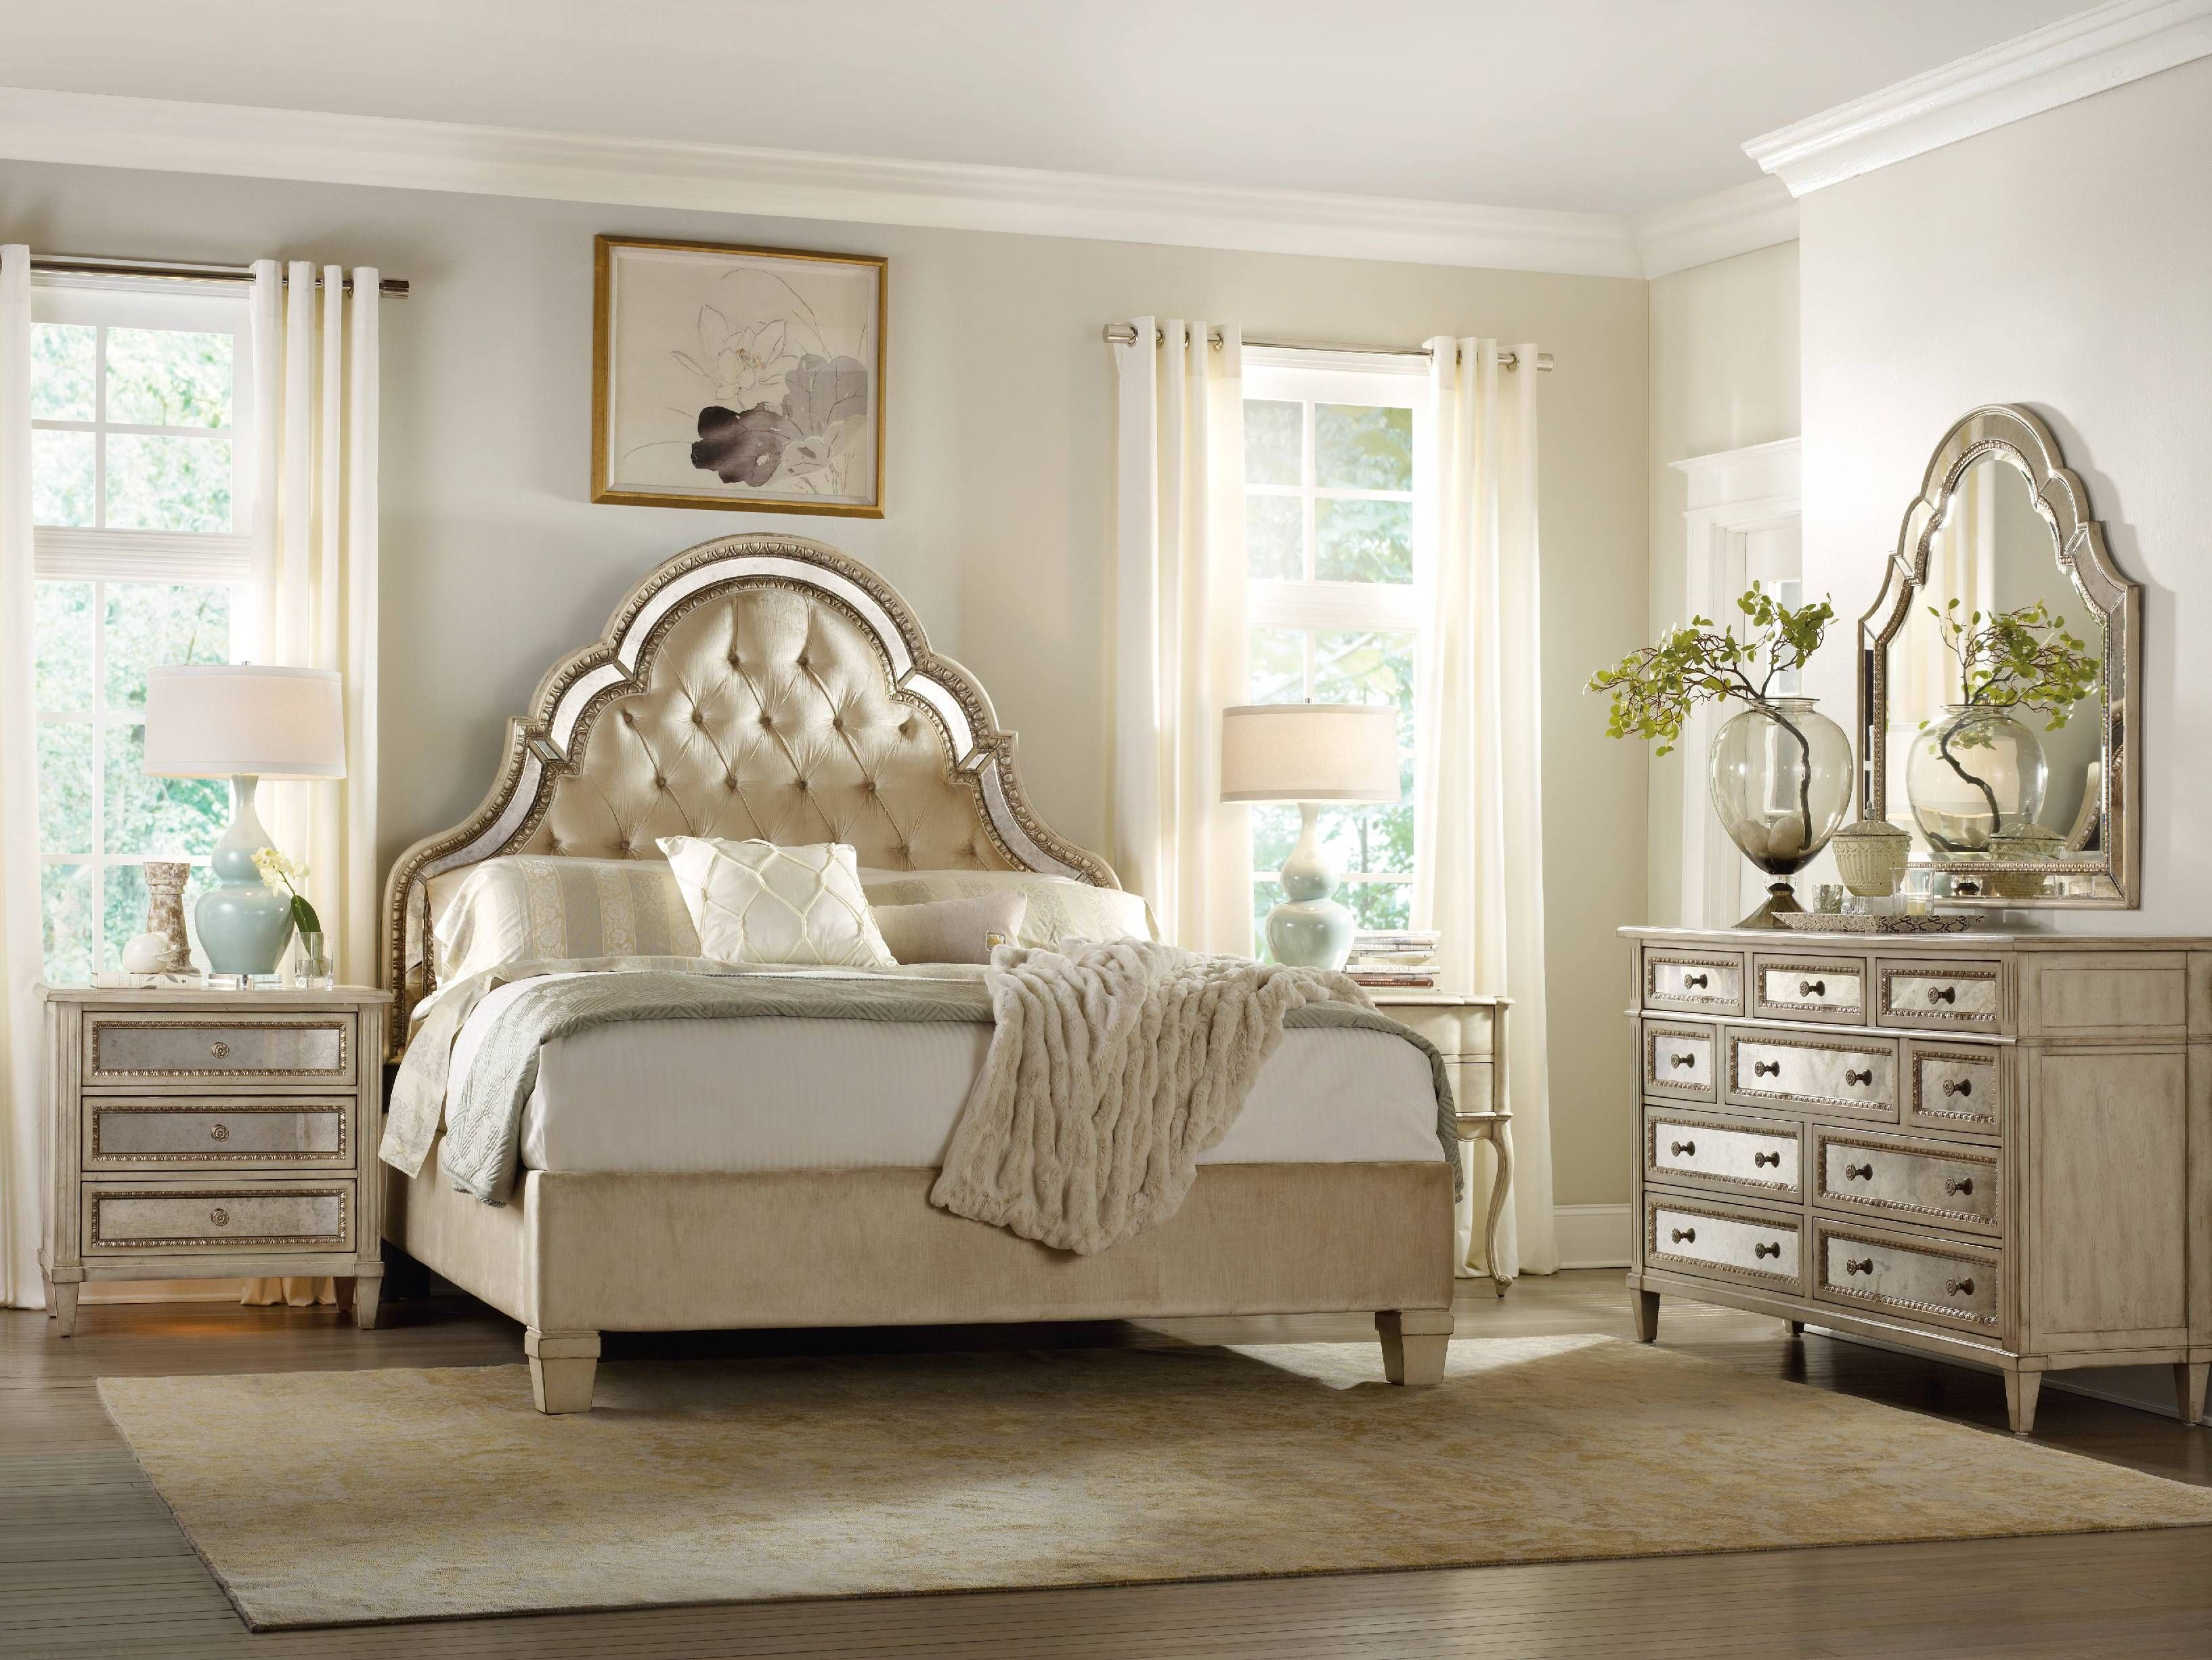 Hooker Furniture Sanctuary King Tufted Bed Pearl Essence 3023 90866 House Mirrored Furniture